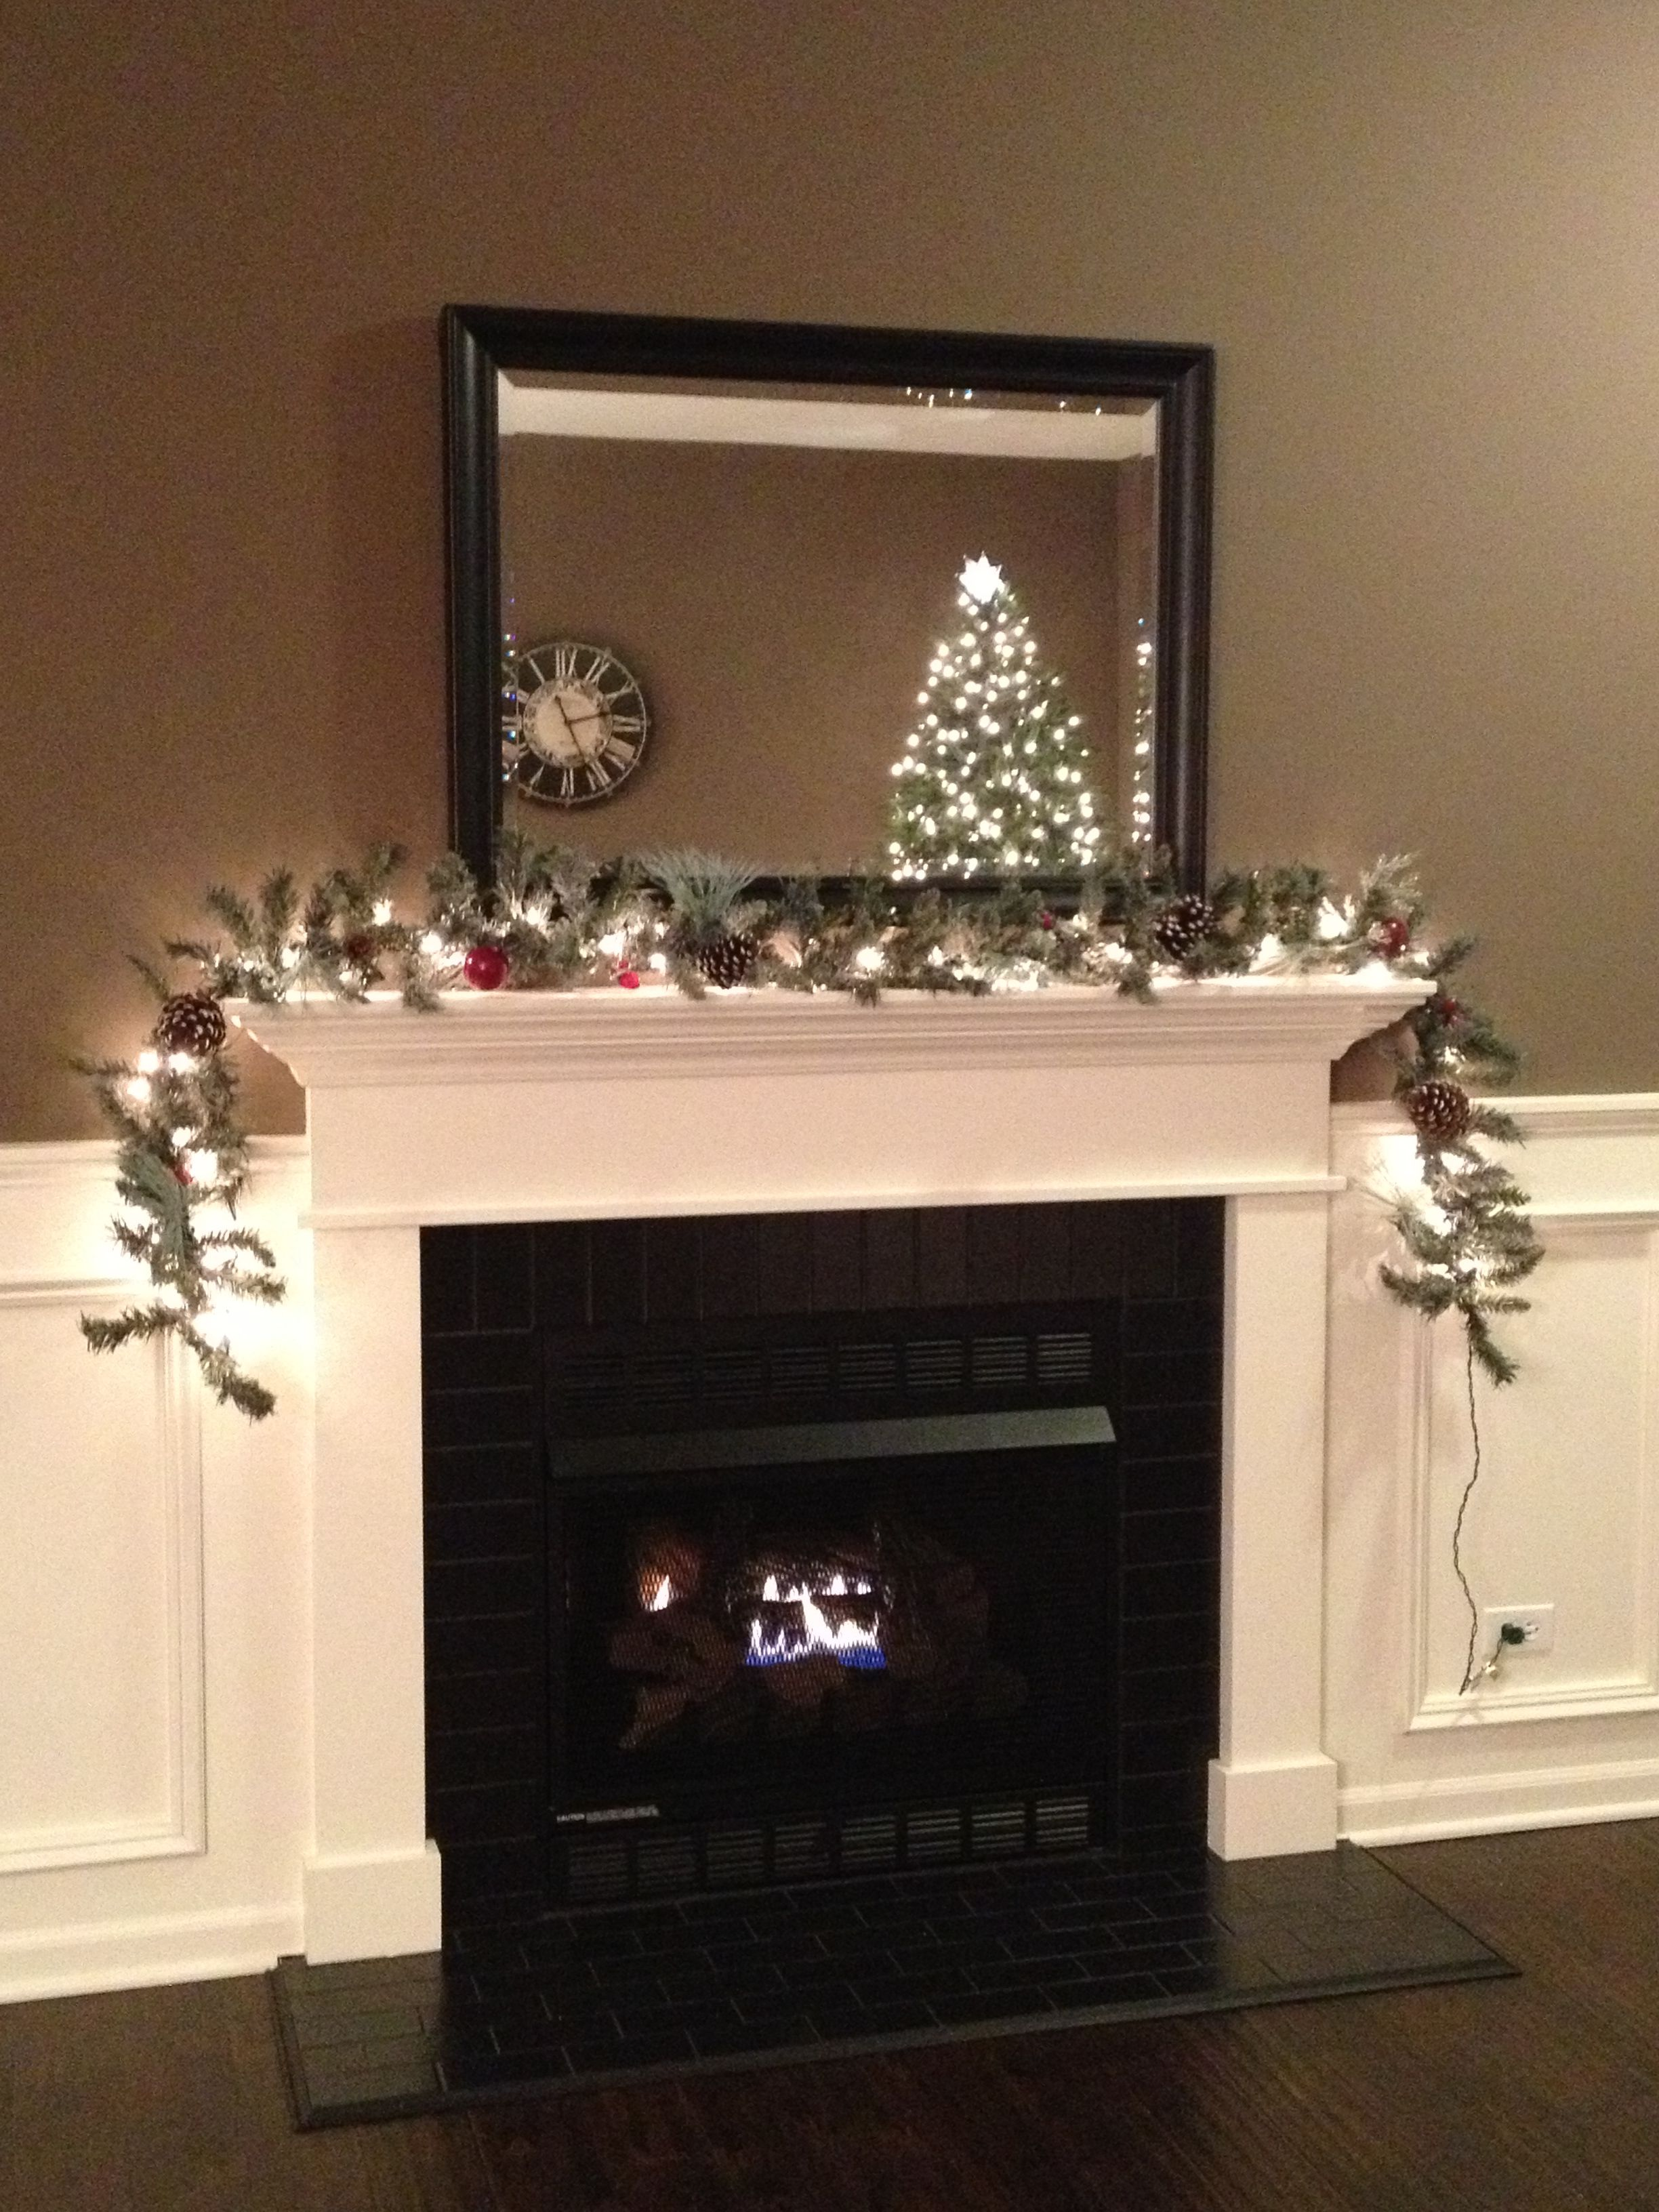 Black Subway Tile Fireplace With White Mantel And Trim Really Clean Look I Think We Can Also Do Granite Ger Tiles Cleaner